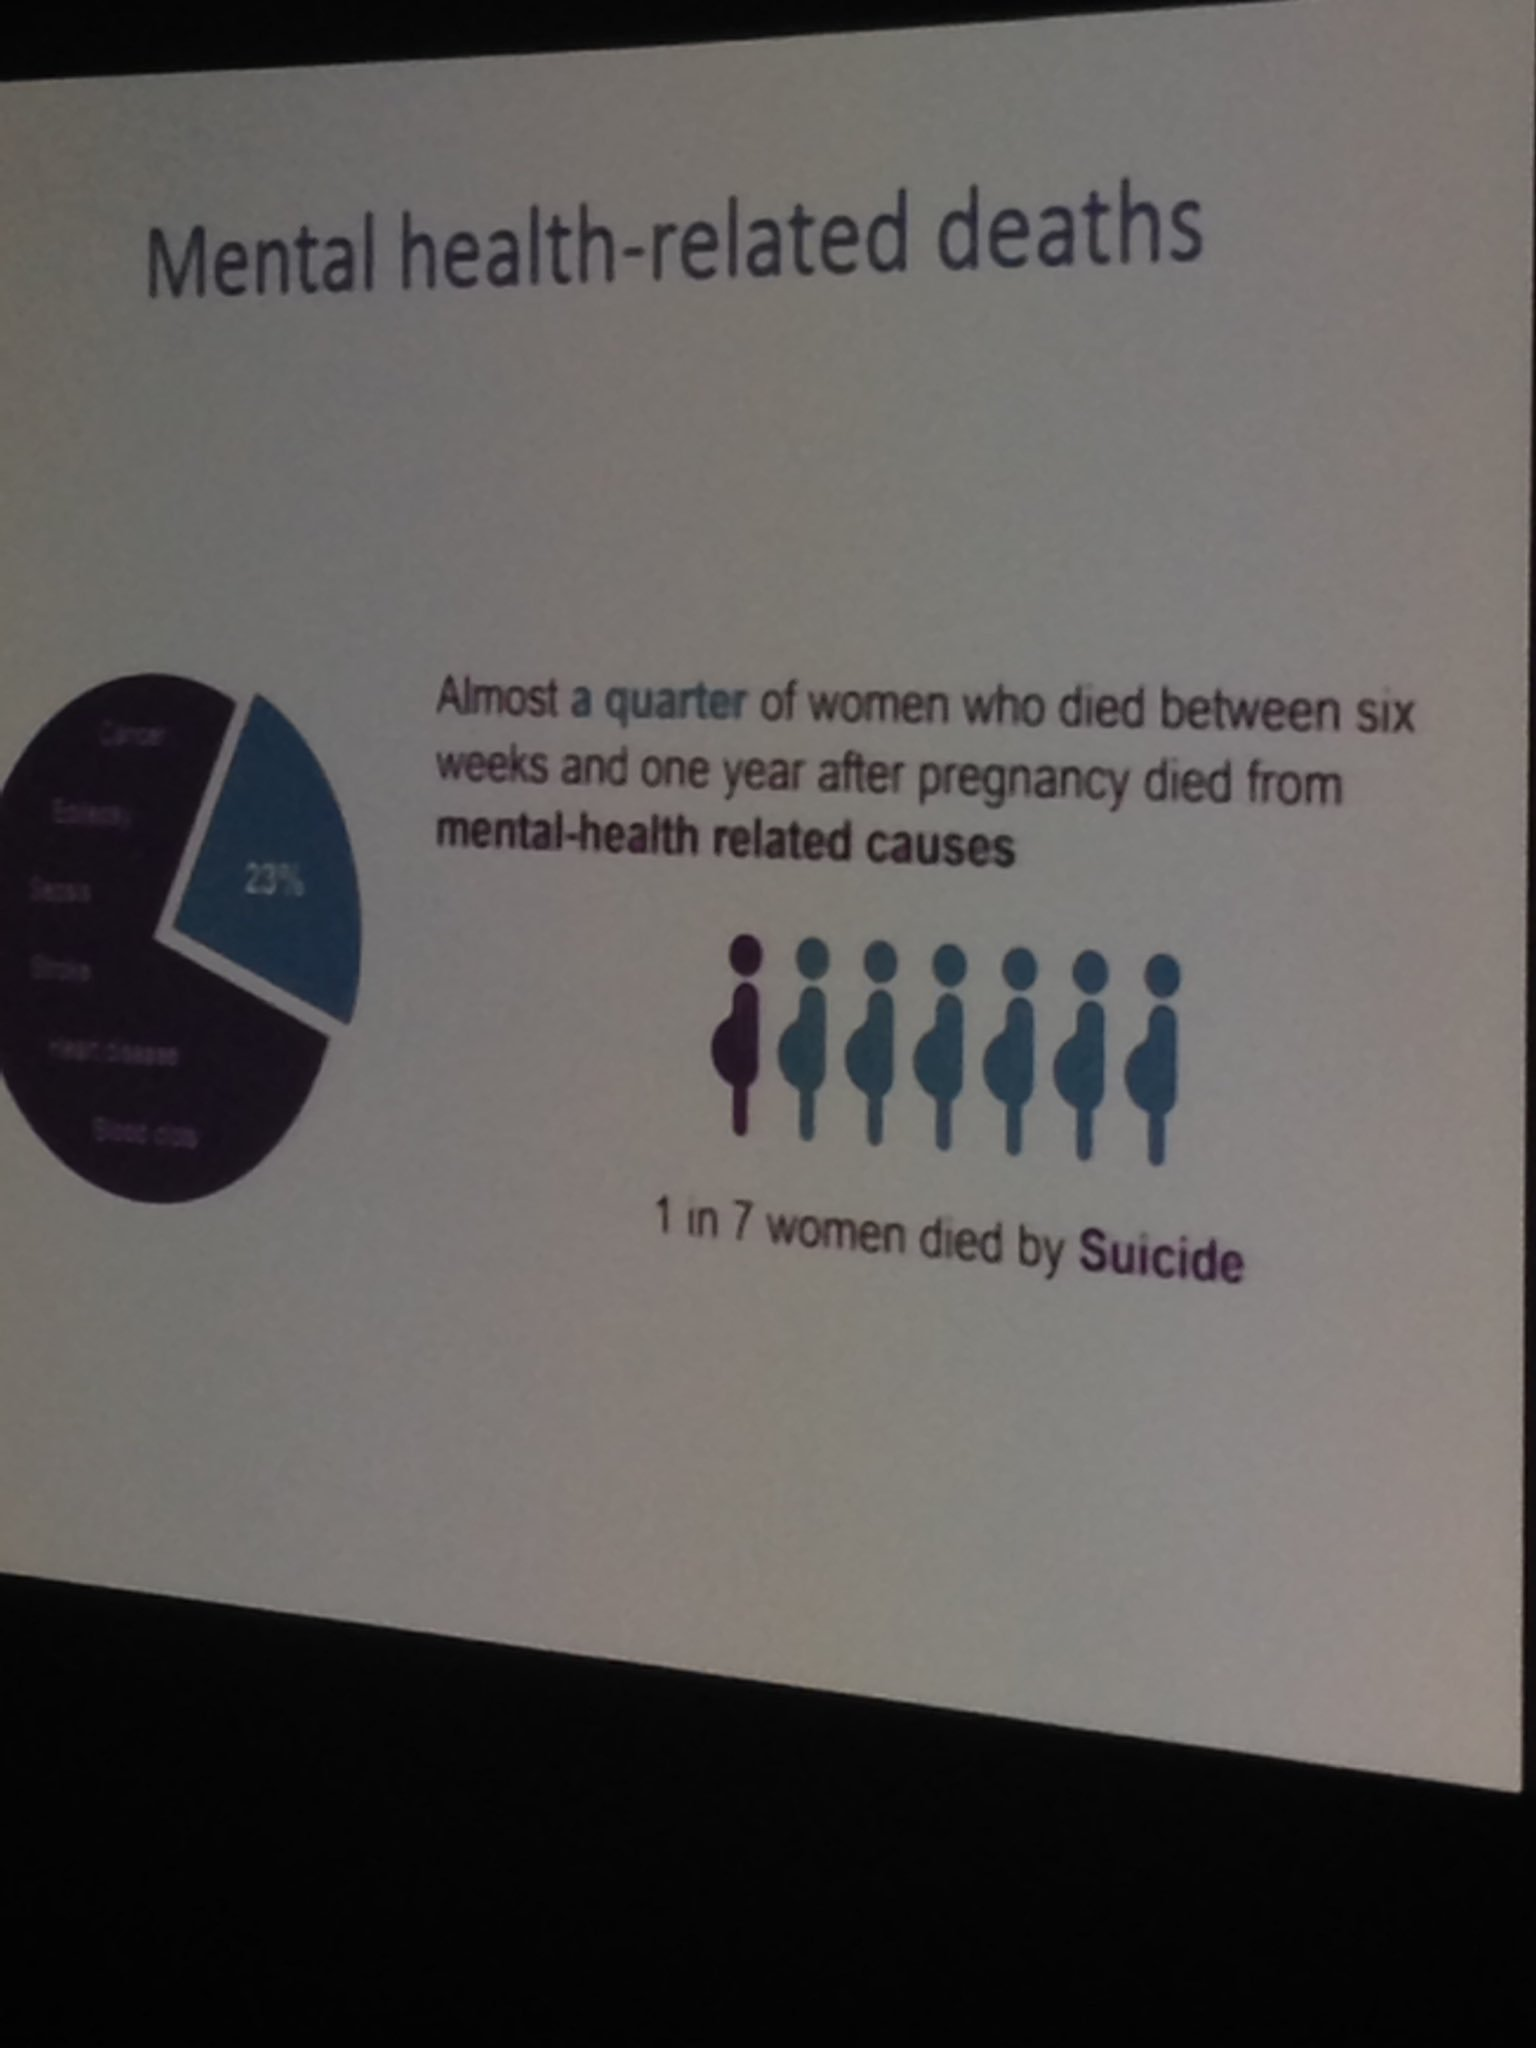 Maternal mental health matters: identify those at risk and take action in pregnancy & postpartum #RCOGNTC #PND https://t.co/Y97g7LKXxg